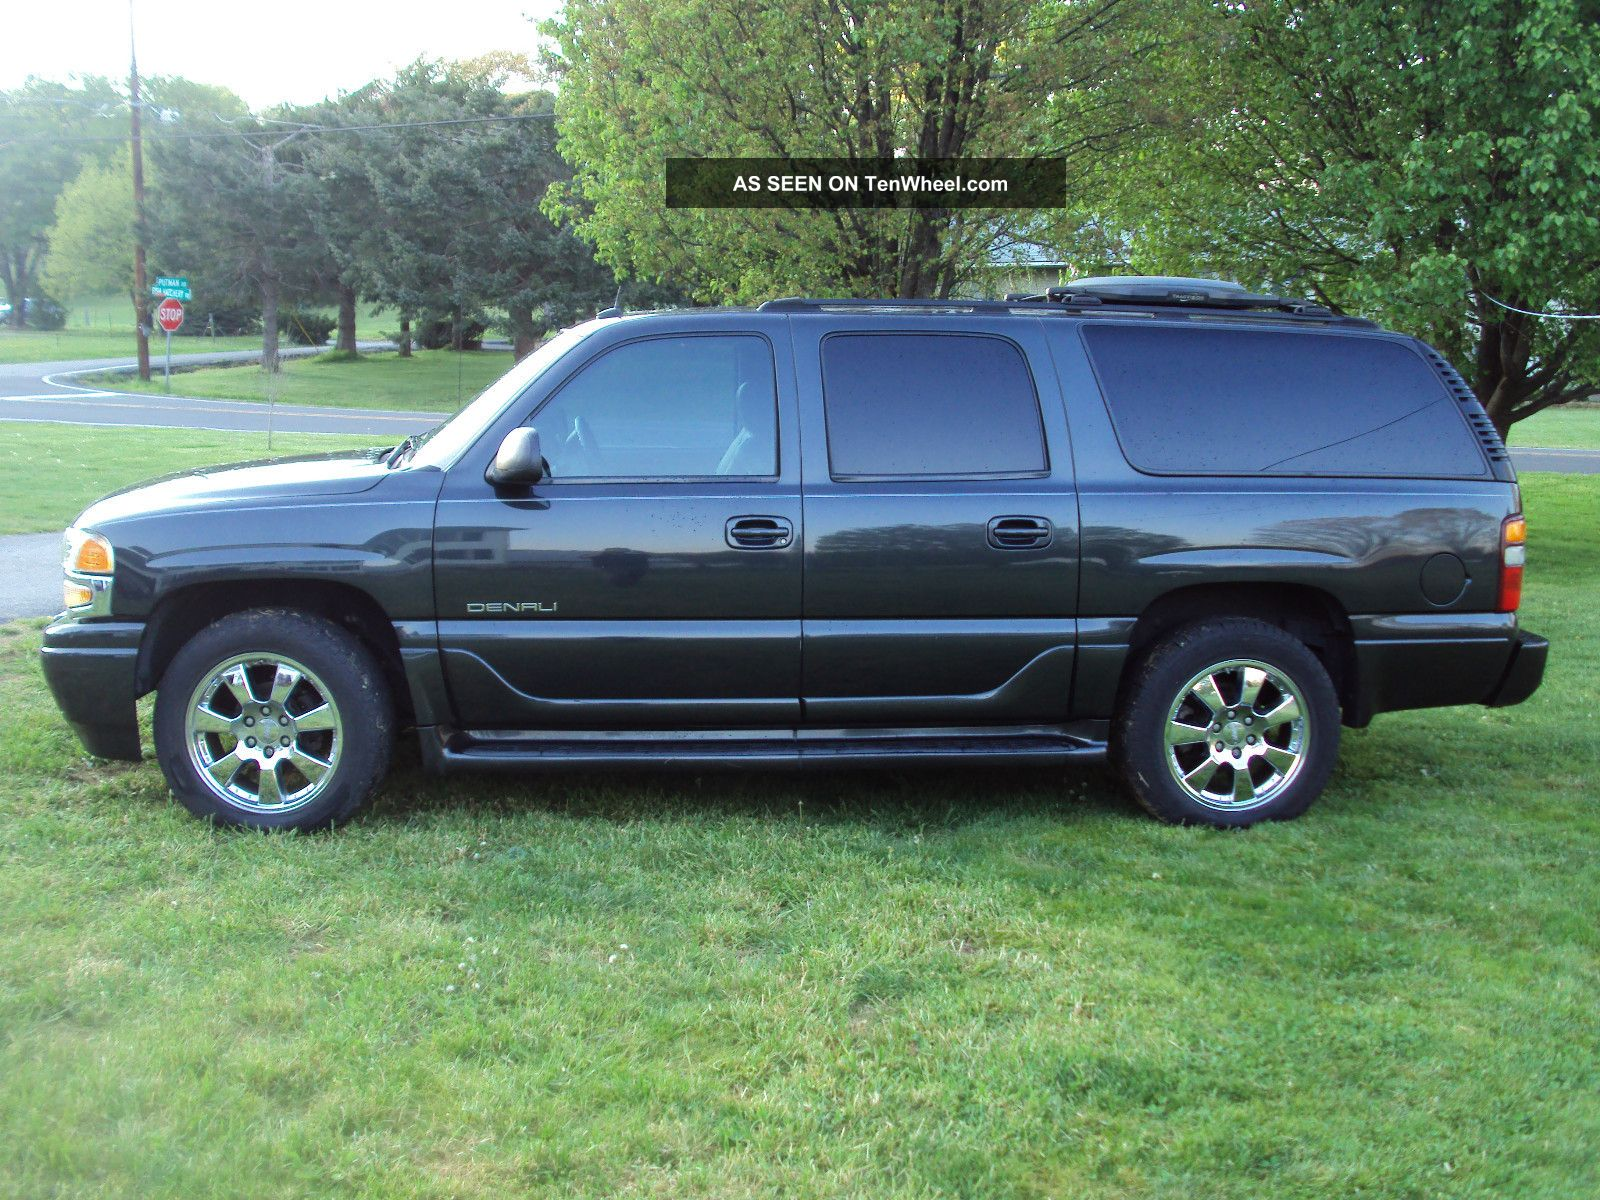 2003 gmc yukon denali xl awd loaded. Black Bedroom Furniture Sets. Home Design Ideas